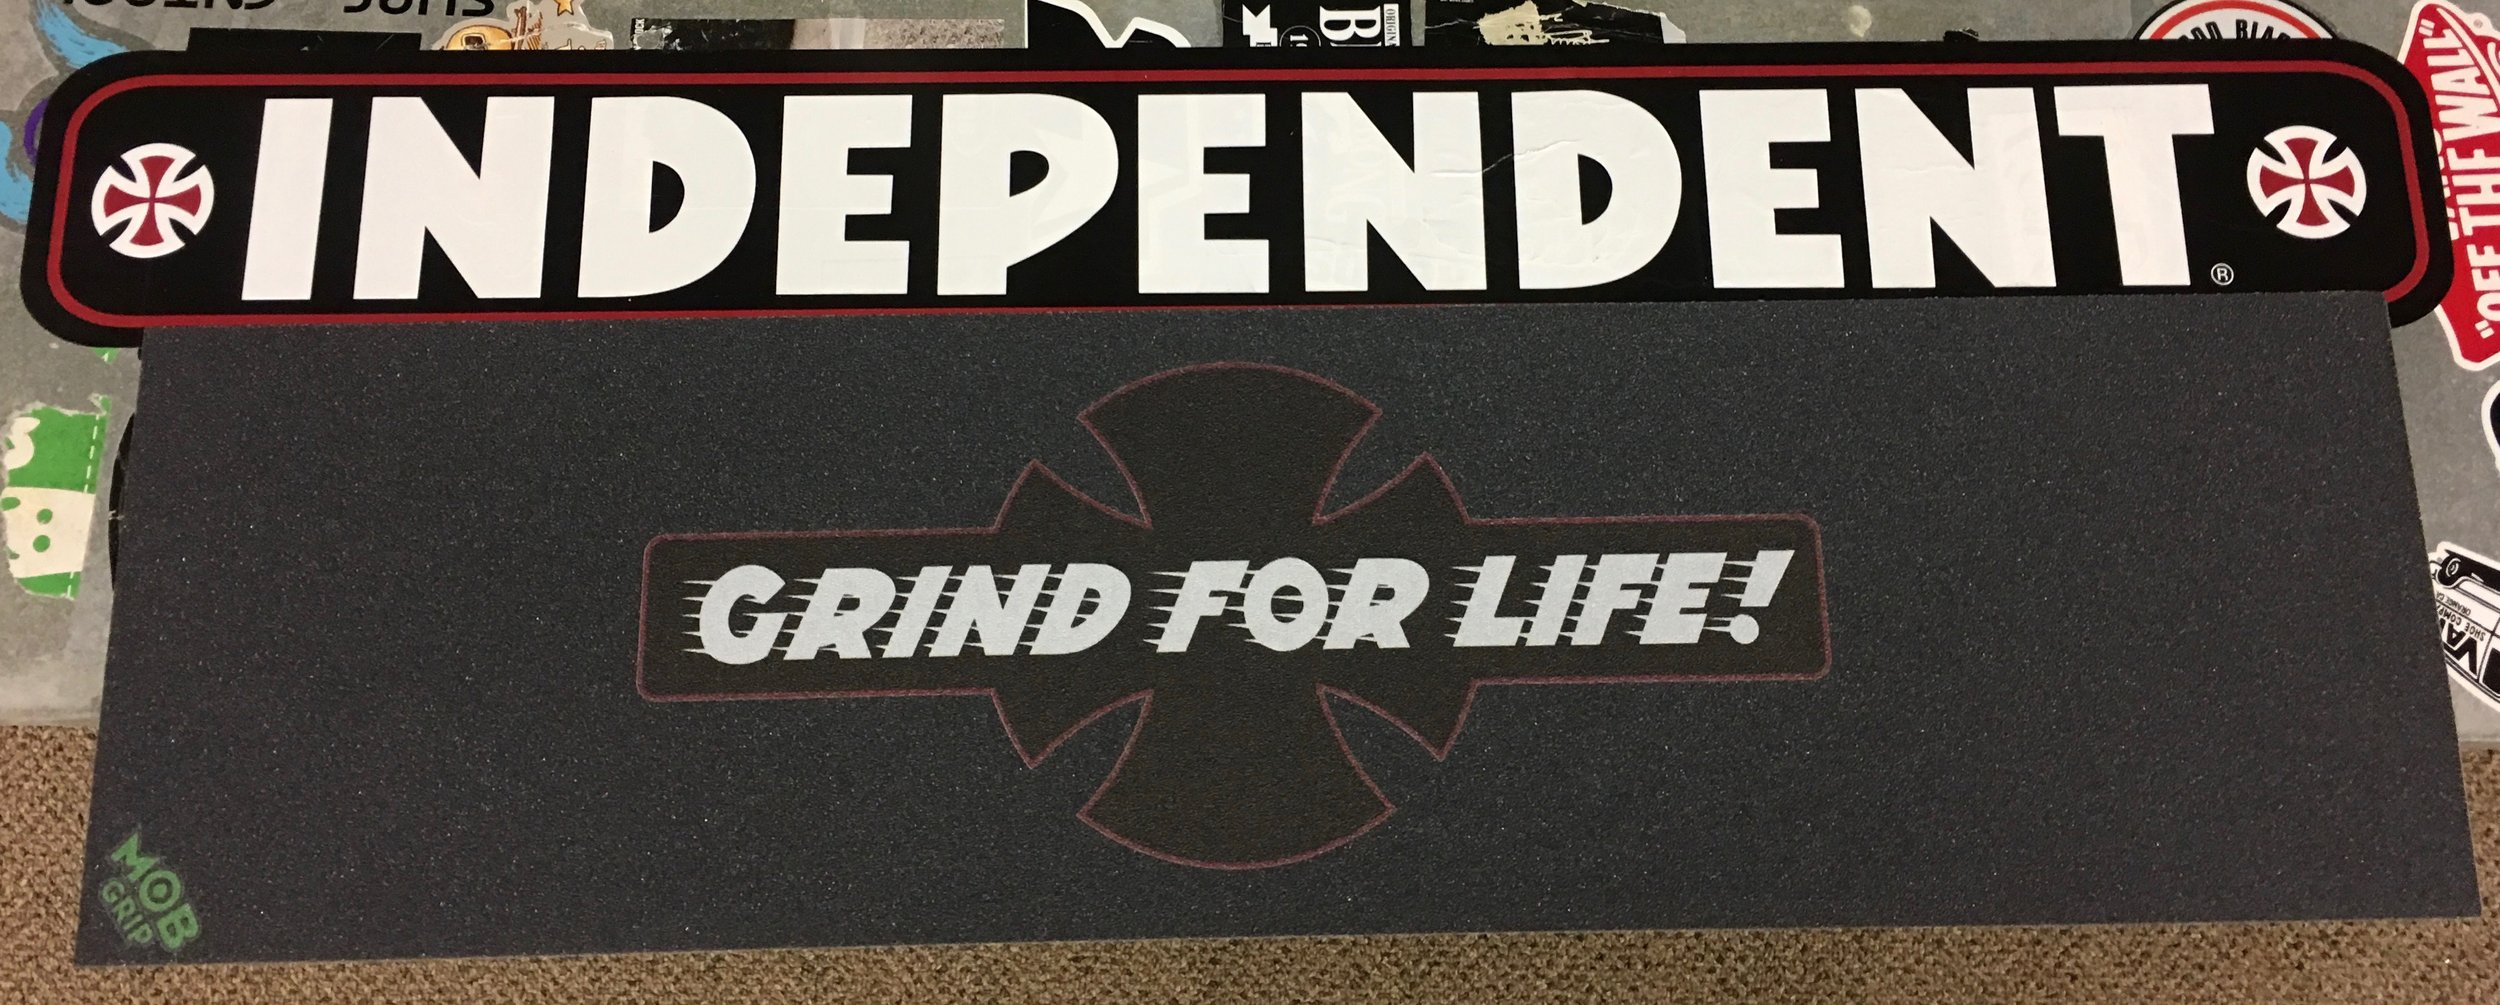 693863109cd Grind for Life GRIP TAPE Independent by MOB GRIP